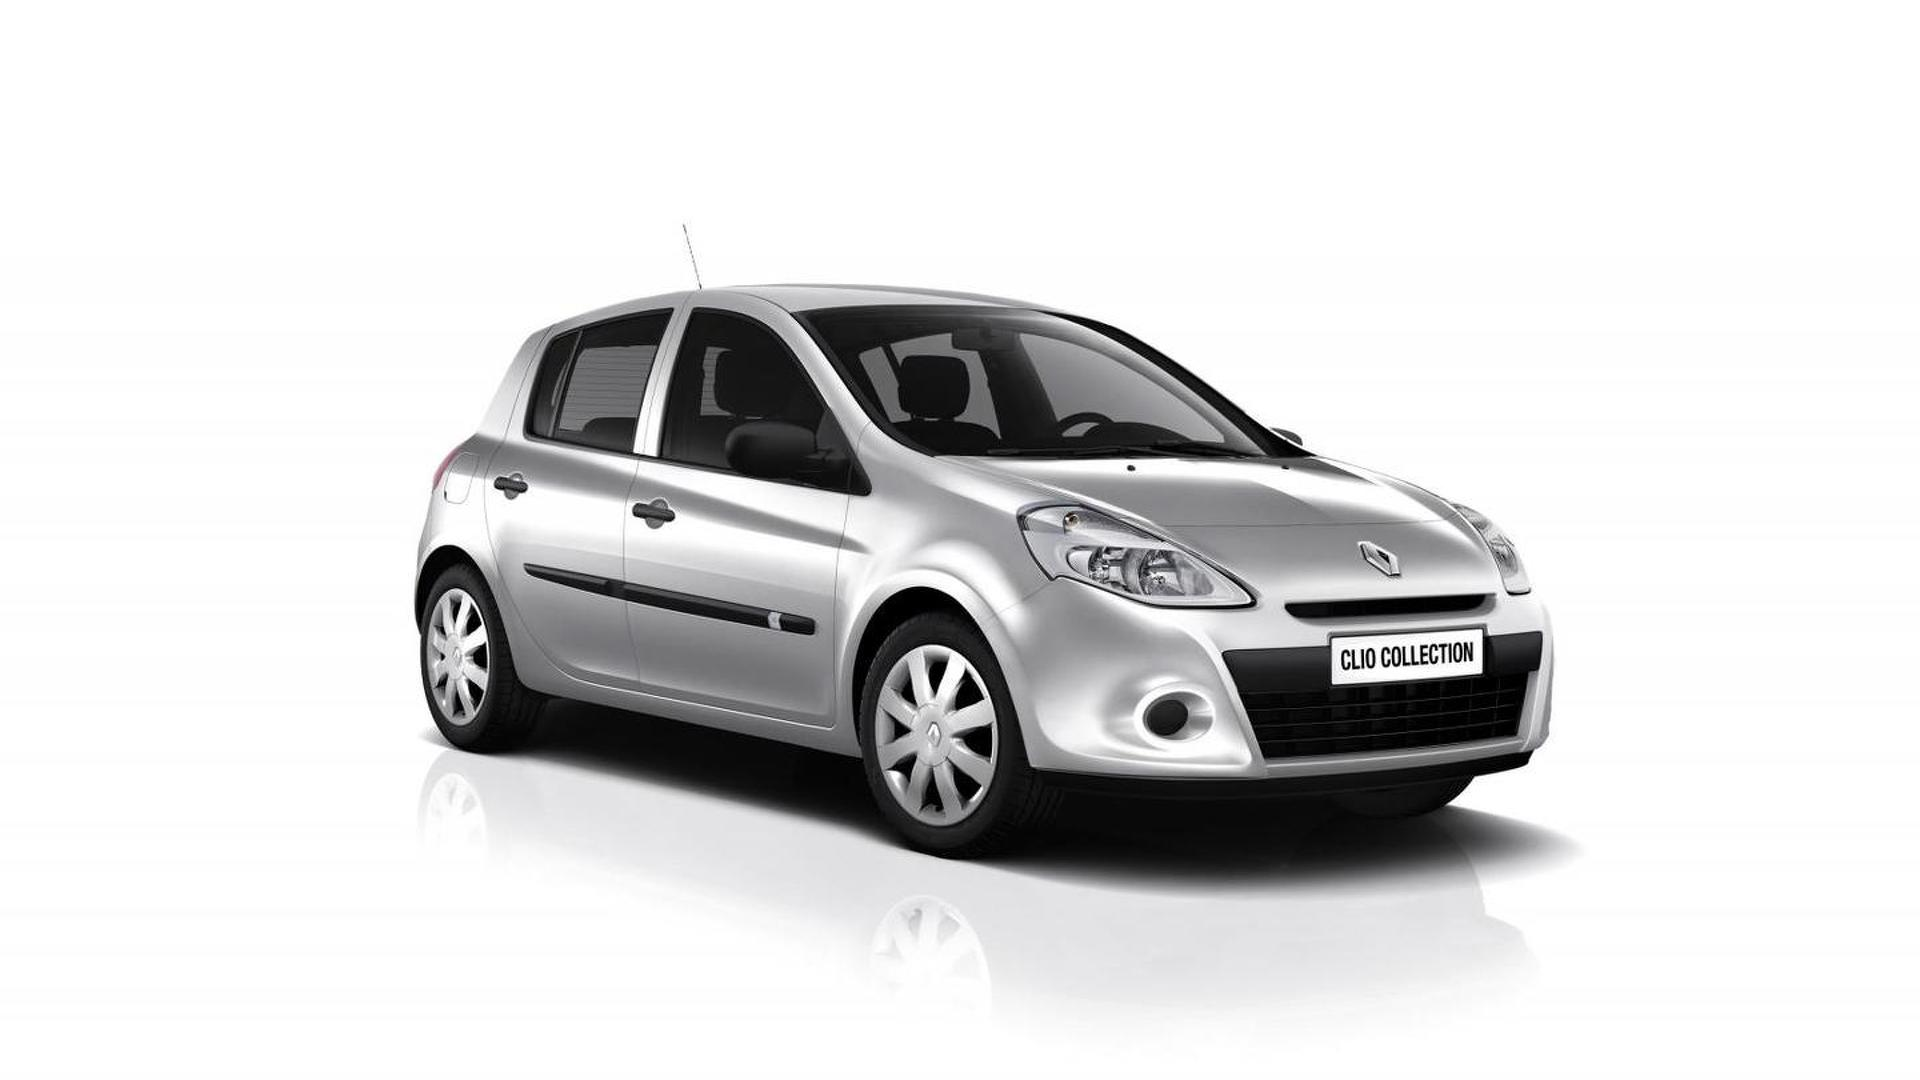 Third-gen Renault Clio lives on as the 'Collection'